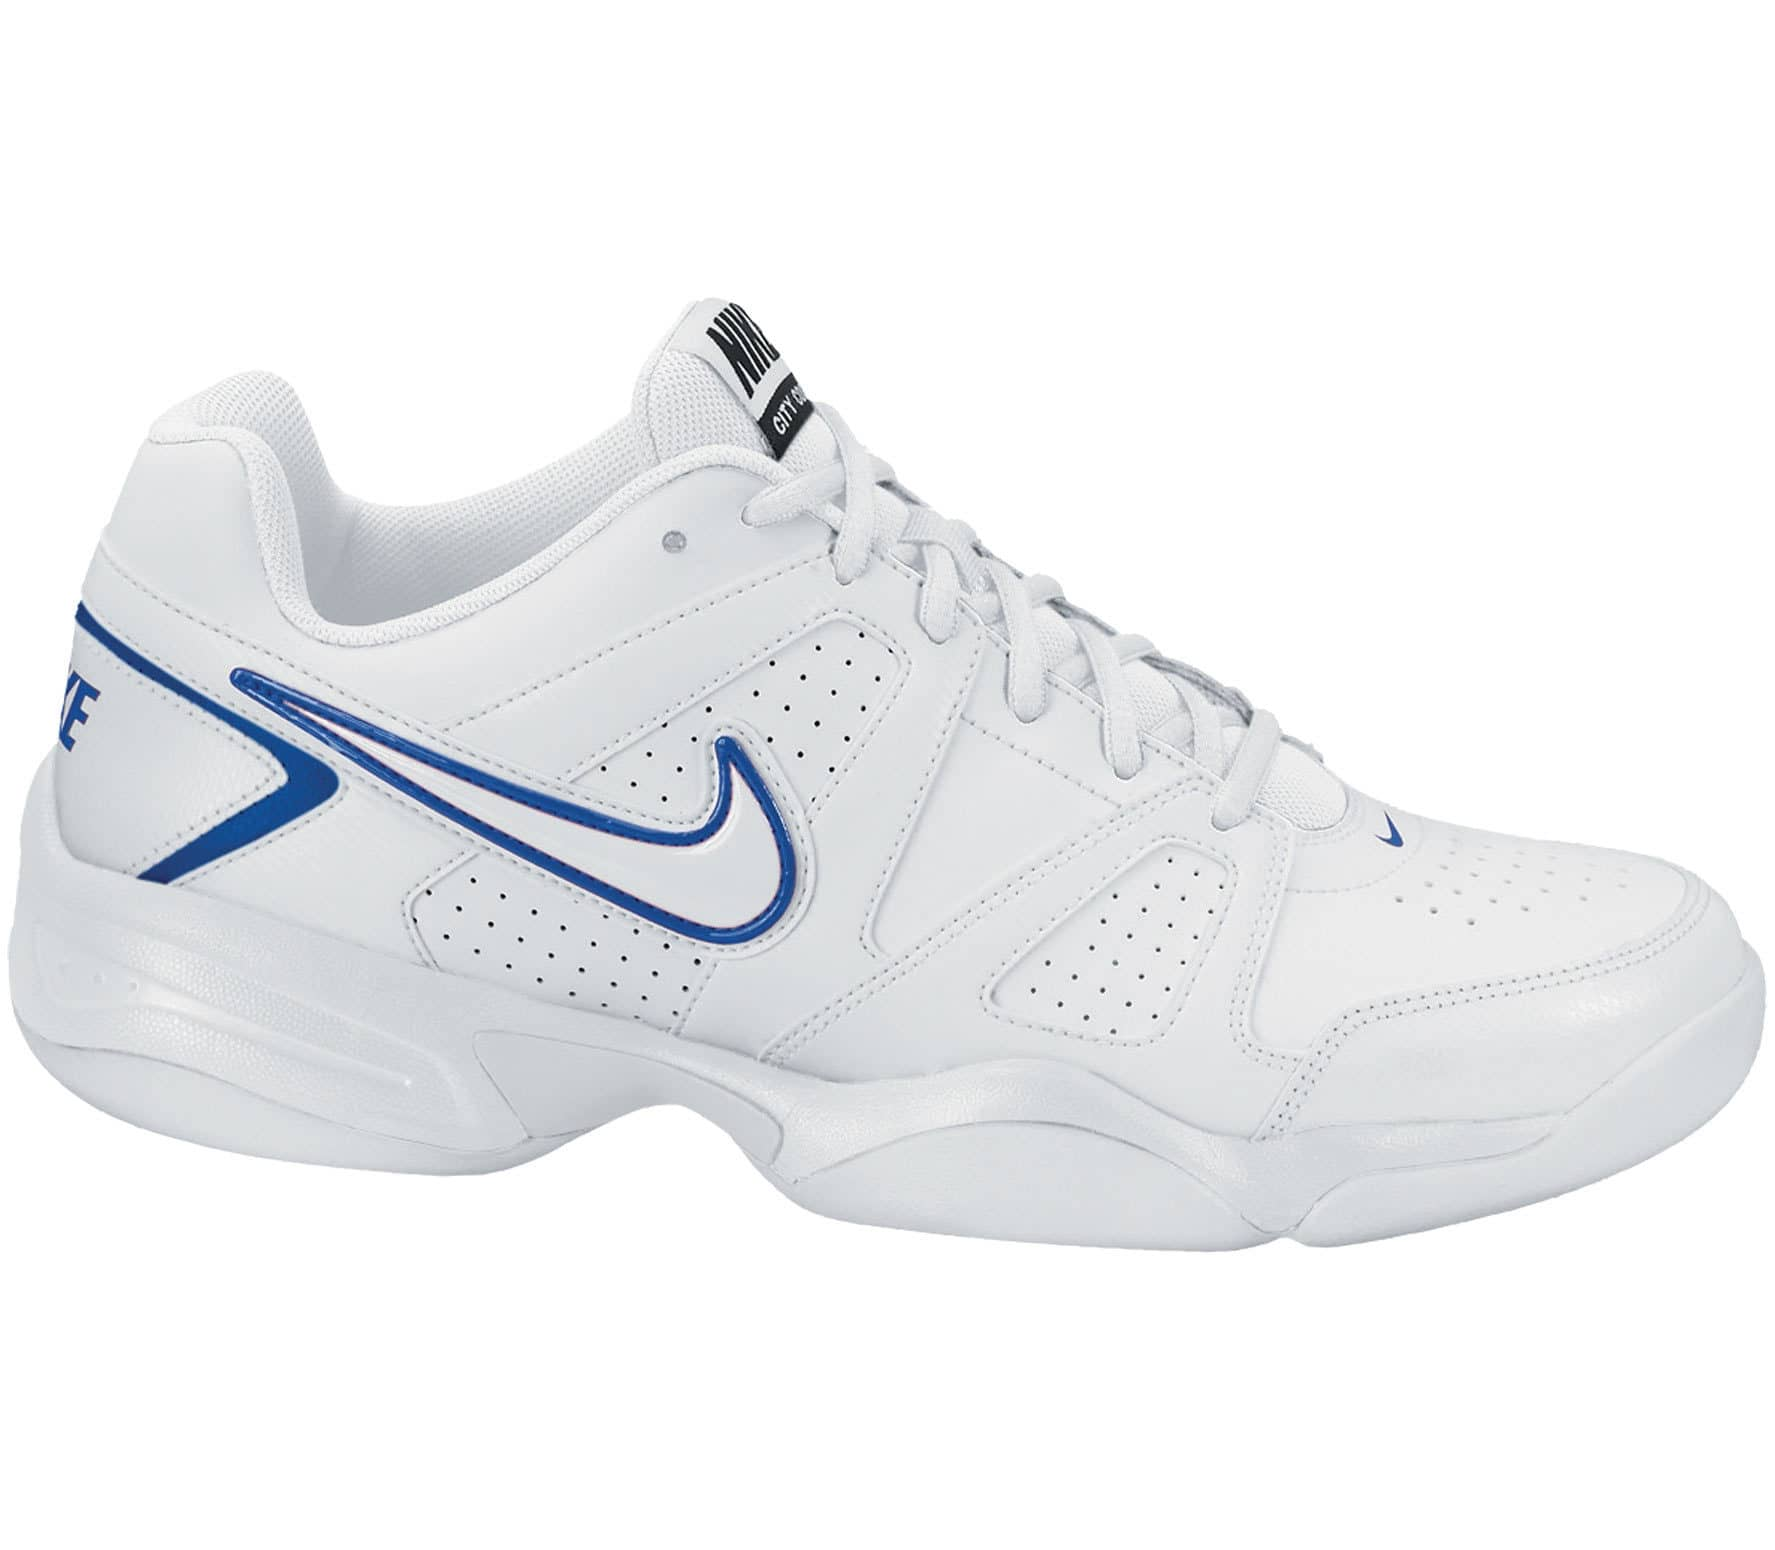 buy online 343f4 4ea3c Nike - City Court VII Indoor men s tennis shoes (white blue)